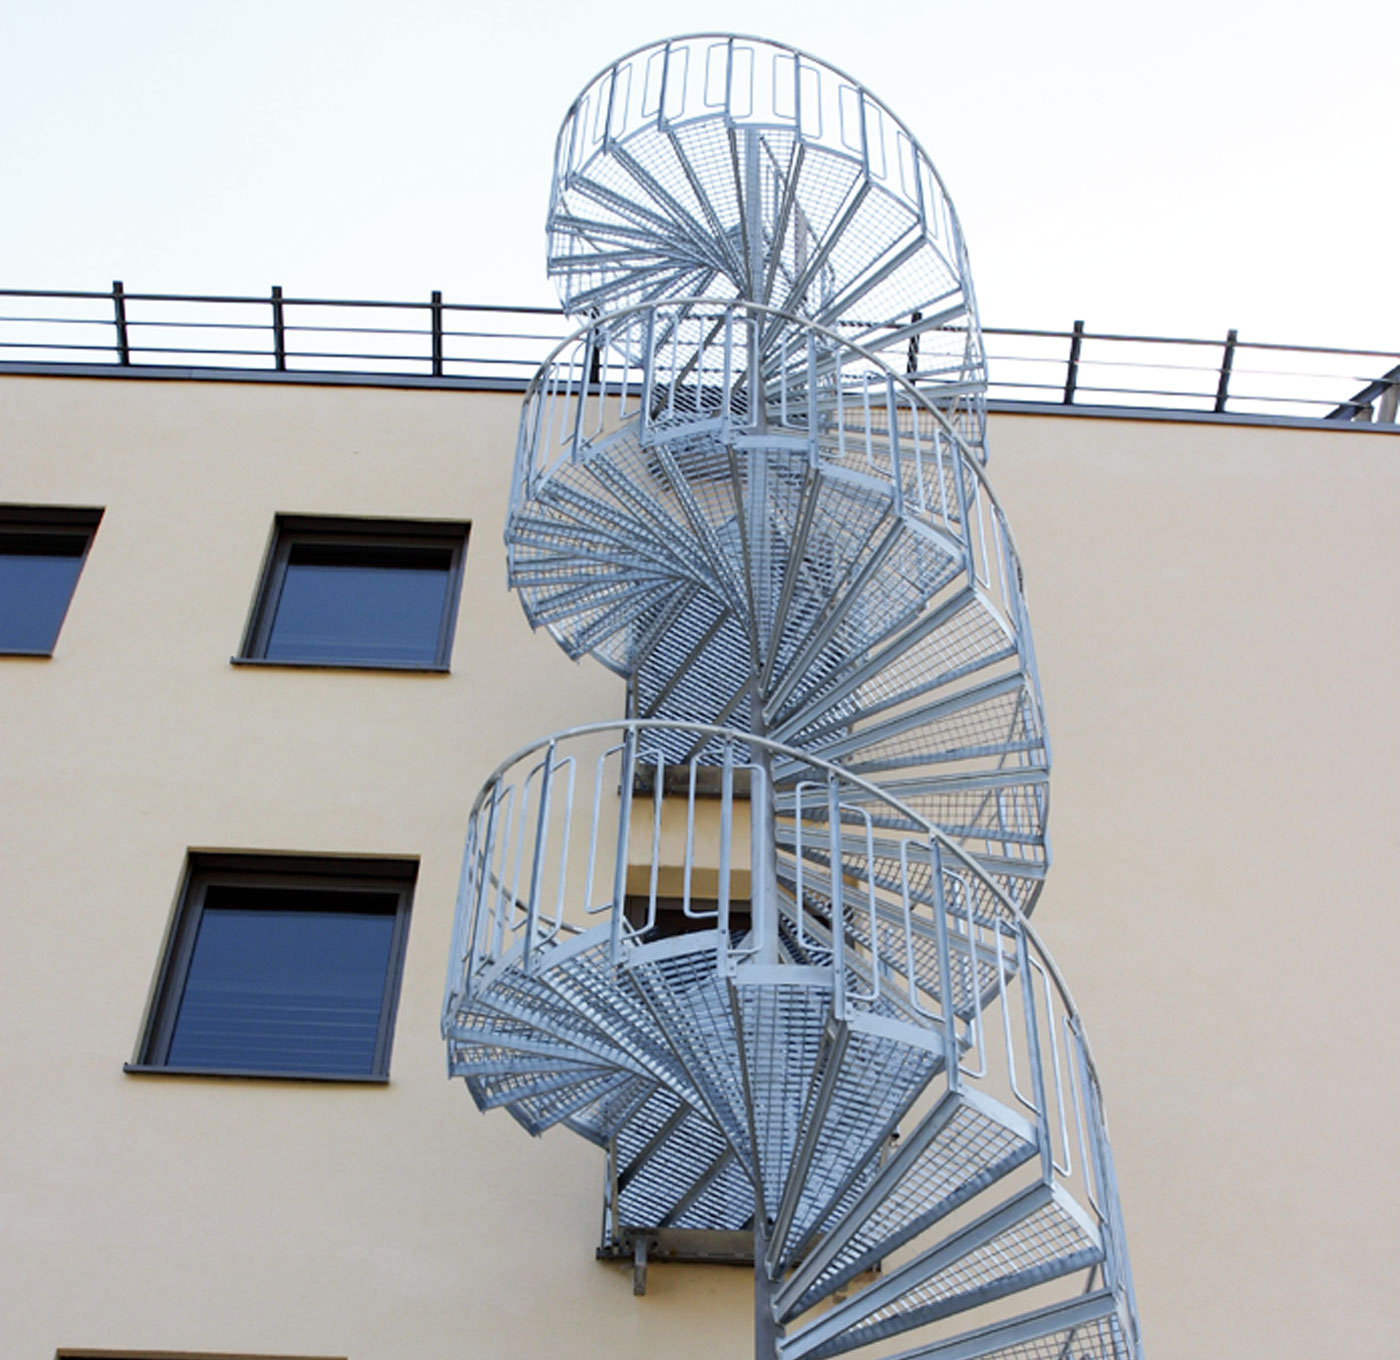 Spiral staircase with childsafe railing